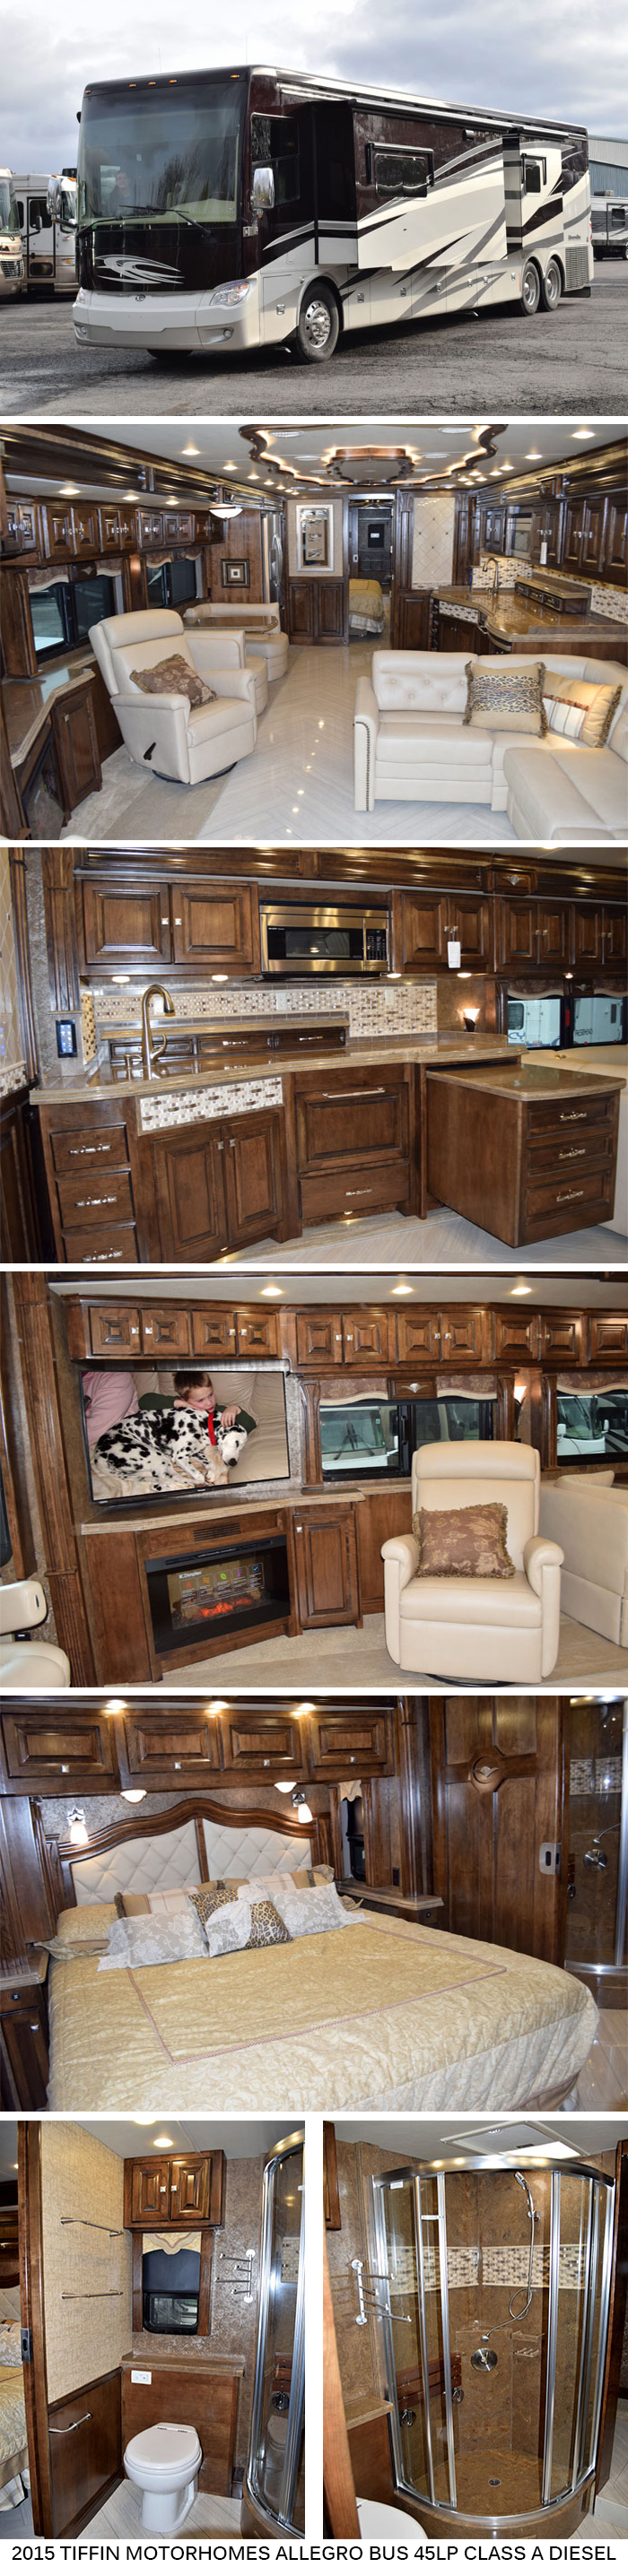 Inventory Colton Rv In Ny Buffalo Rochester And Syracuse Ny Rv Dealer Fifth Wheel Campers And Class A Motorhomes For Sale In Ny Luxury Rv Tiny House Camper Rv Living